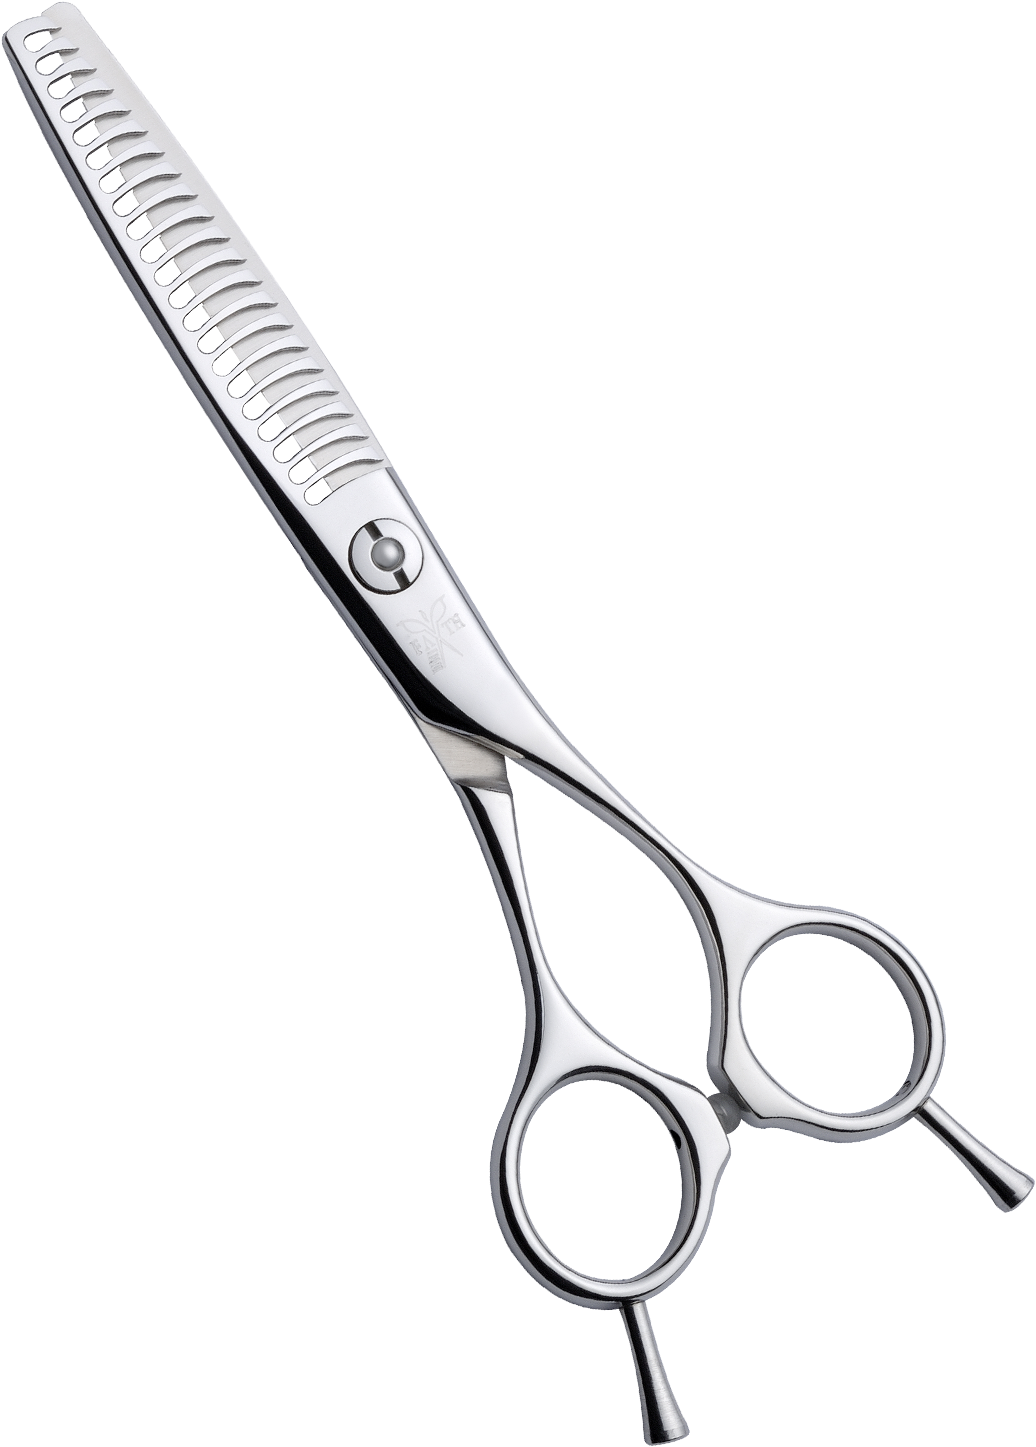 Hair Cutting Scissors Pictures.